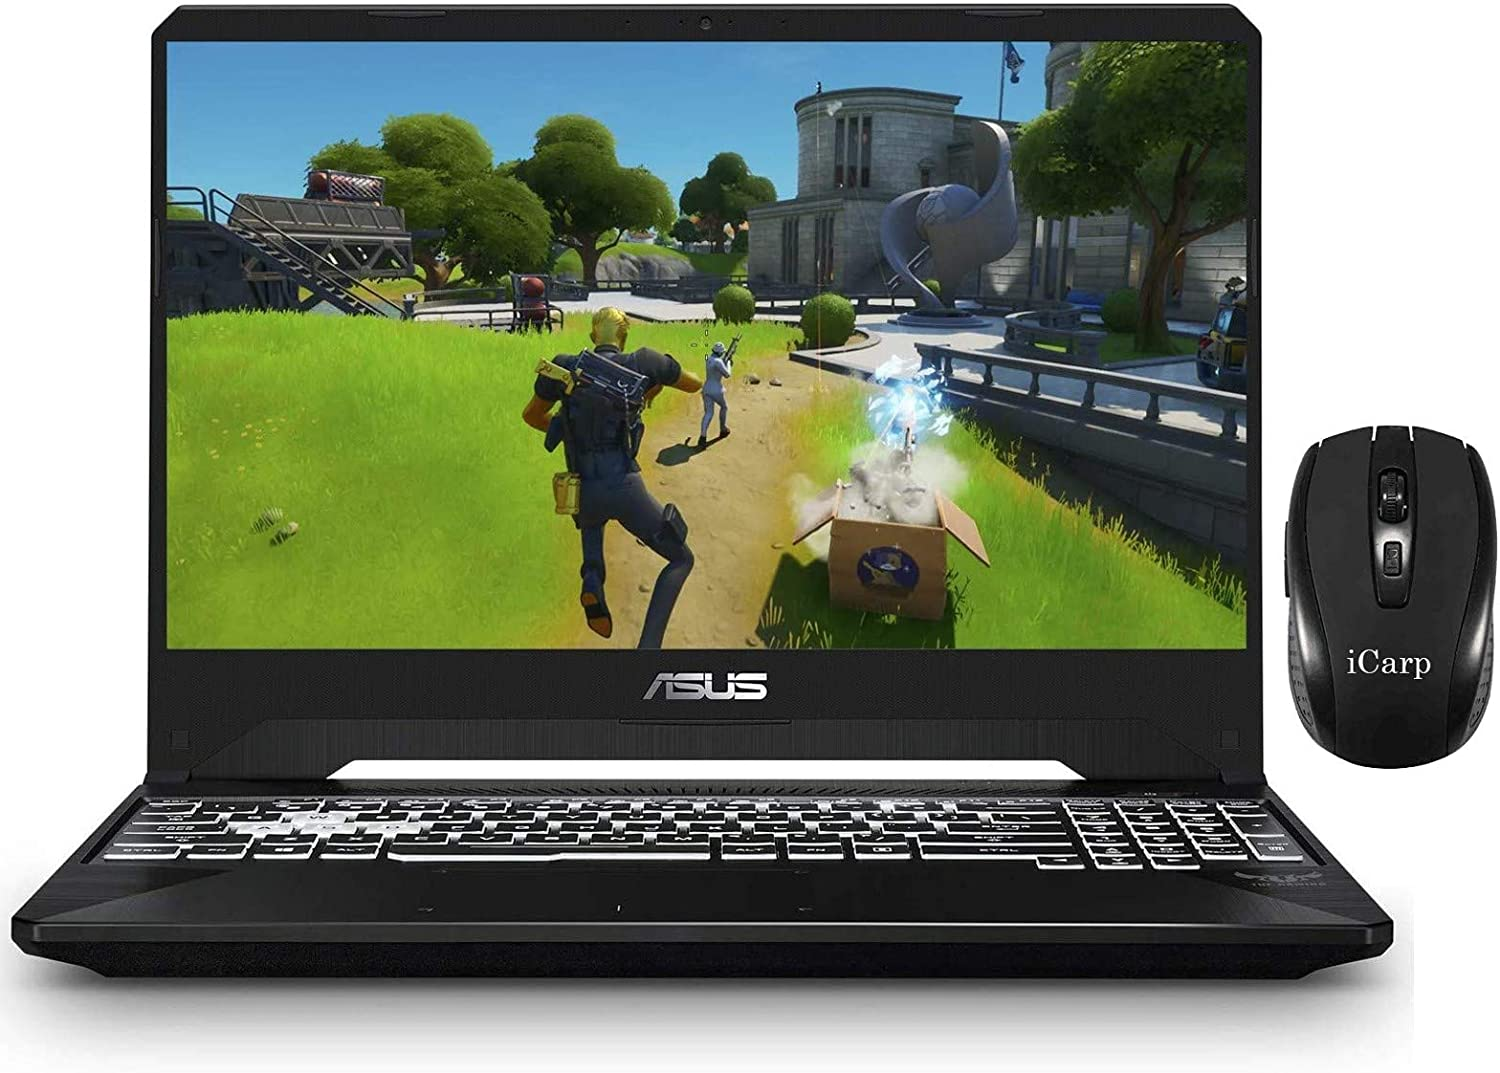 "2020 Newest ASUS TUF Gaming Laptop 15.6"" Full HD Display AMD Quad-Core Ryzen 5 3550H (Beats i7-7700HQ) 32GB DDR4 1TB PCIe SSD 4GB GTX 1650 RGB Backlit Webcam Win 10 + iCarp Wireless Mouse"